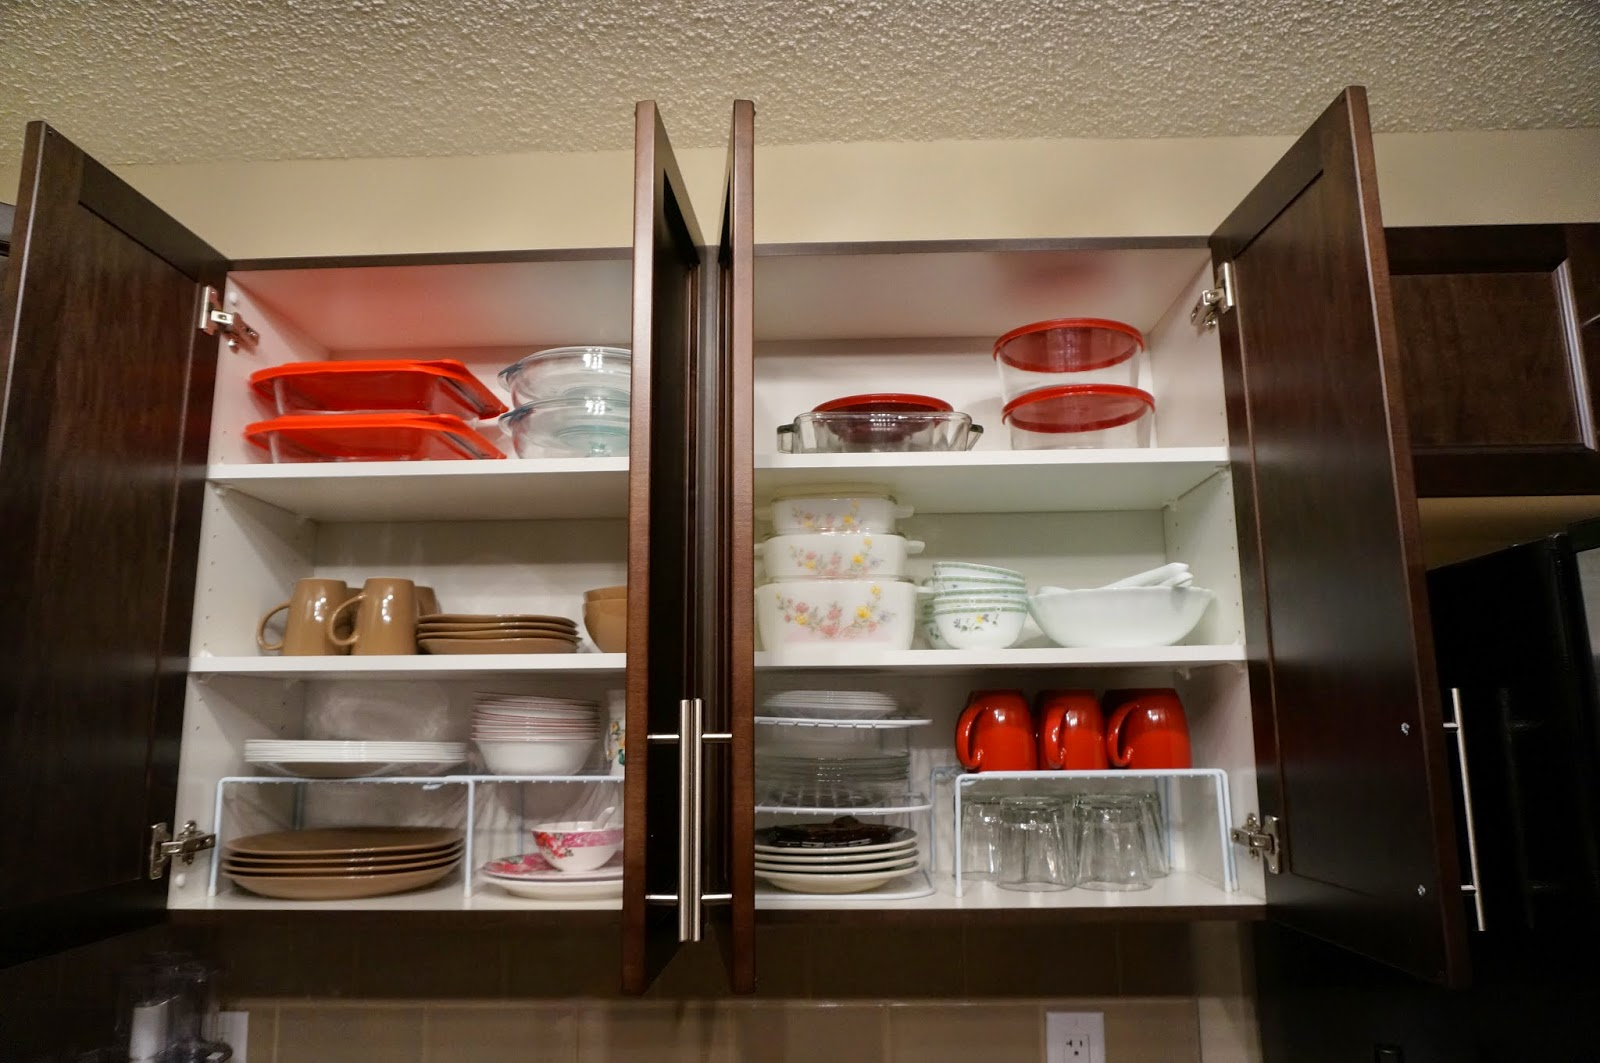 We Love Cozy Homes How To Organize Kitchen Cabinet Shelves A